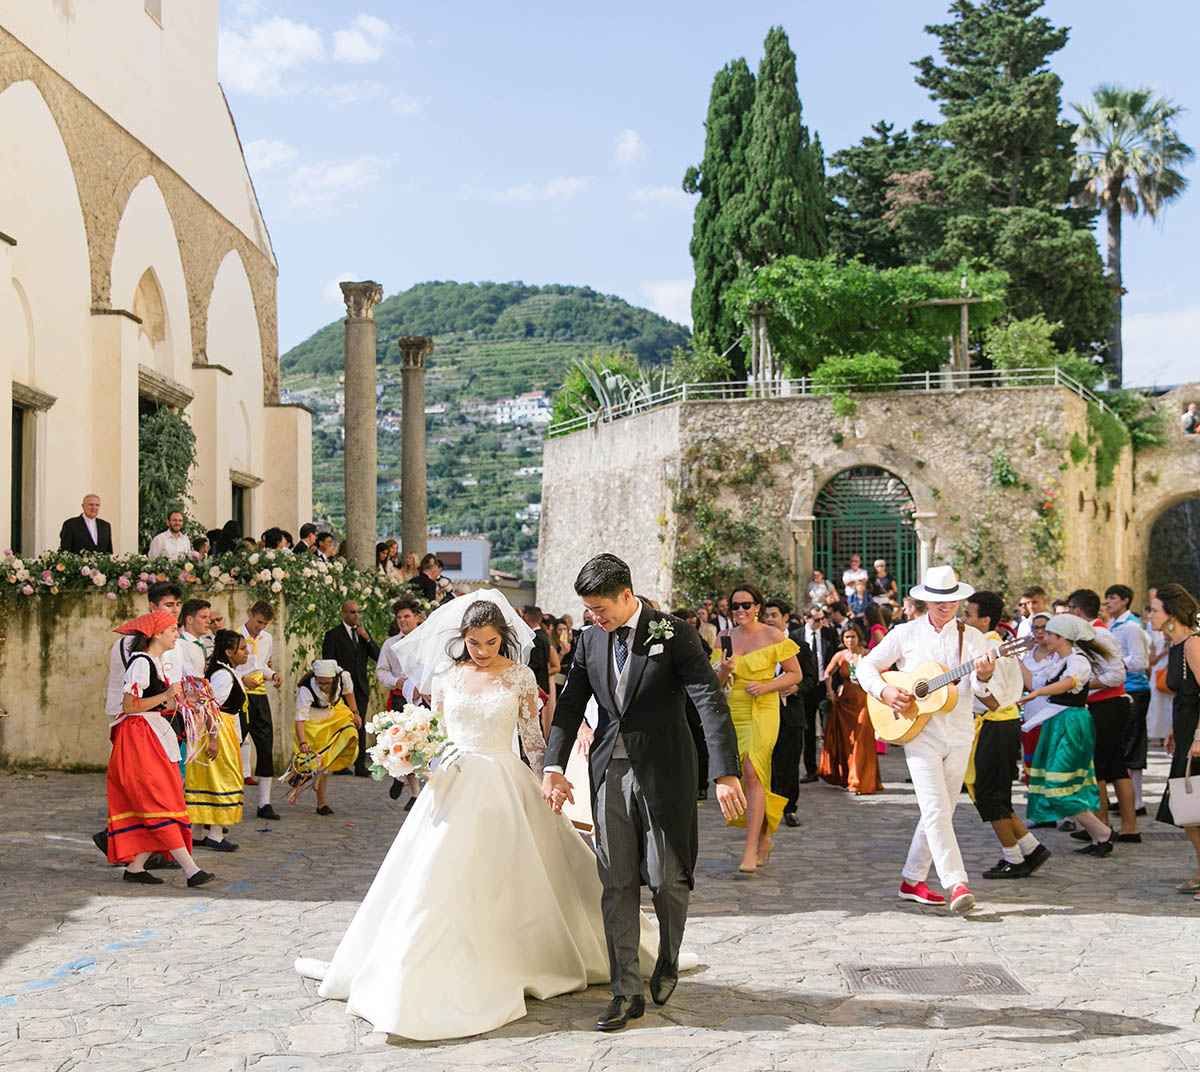 Italian traditional folk musicians wedding Tarantella